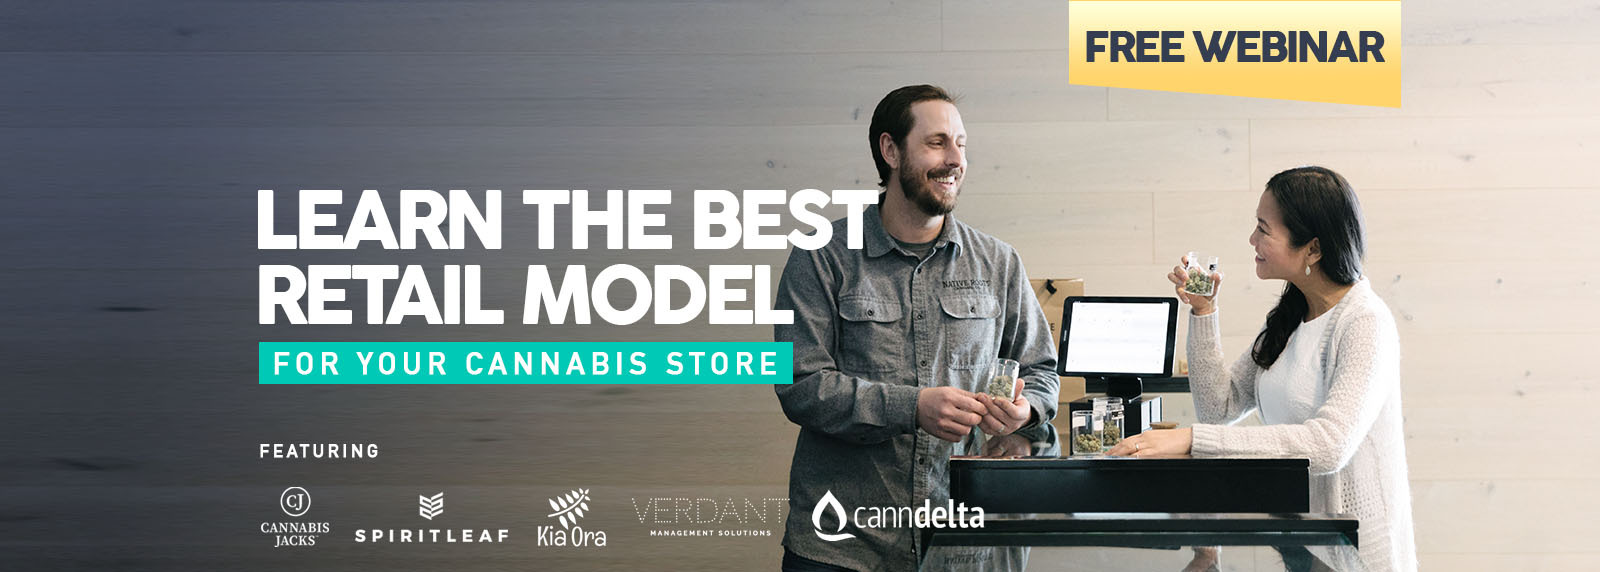 Cova and CannDelta Webinar - Learn the Best Retail Model for Your Cannabis Store